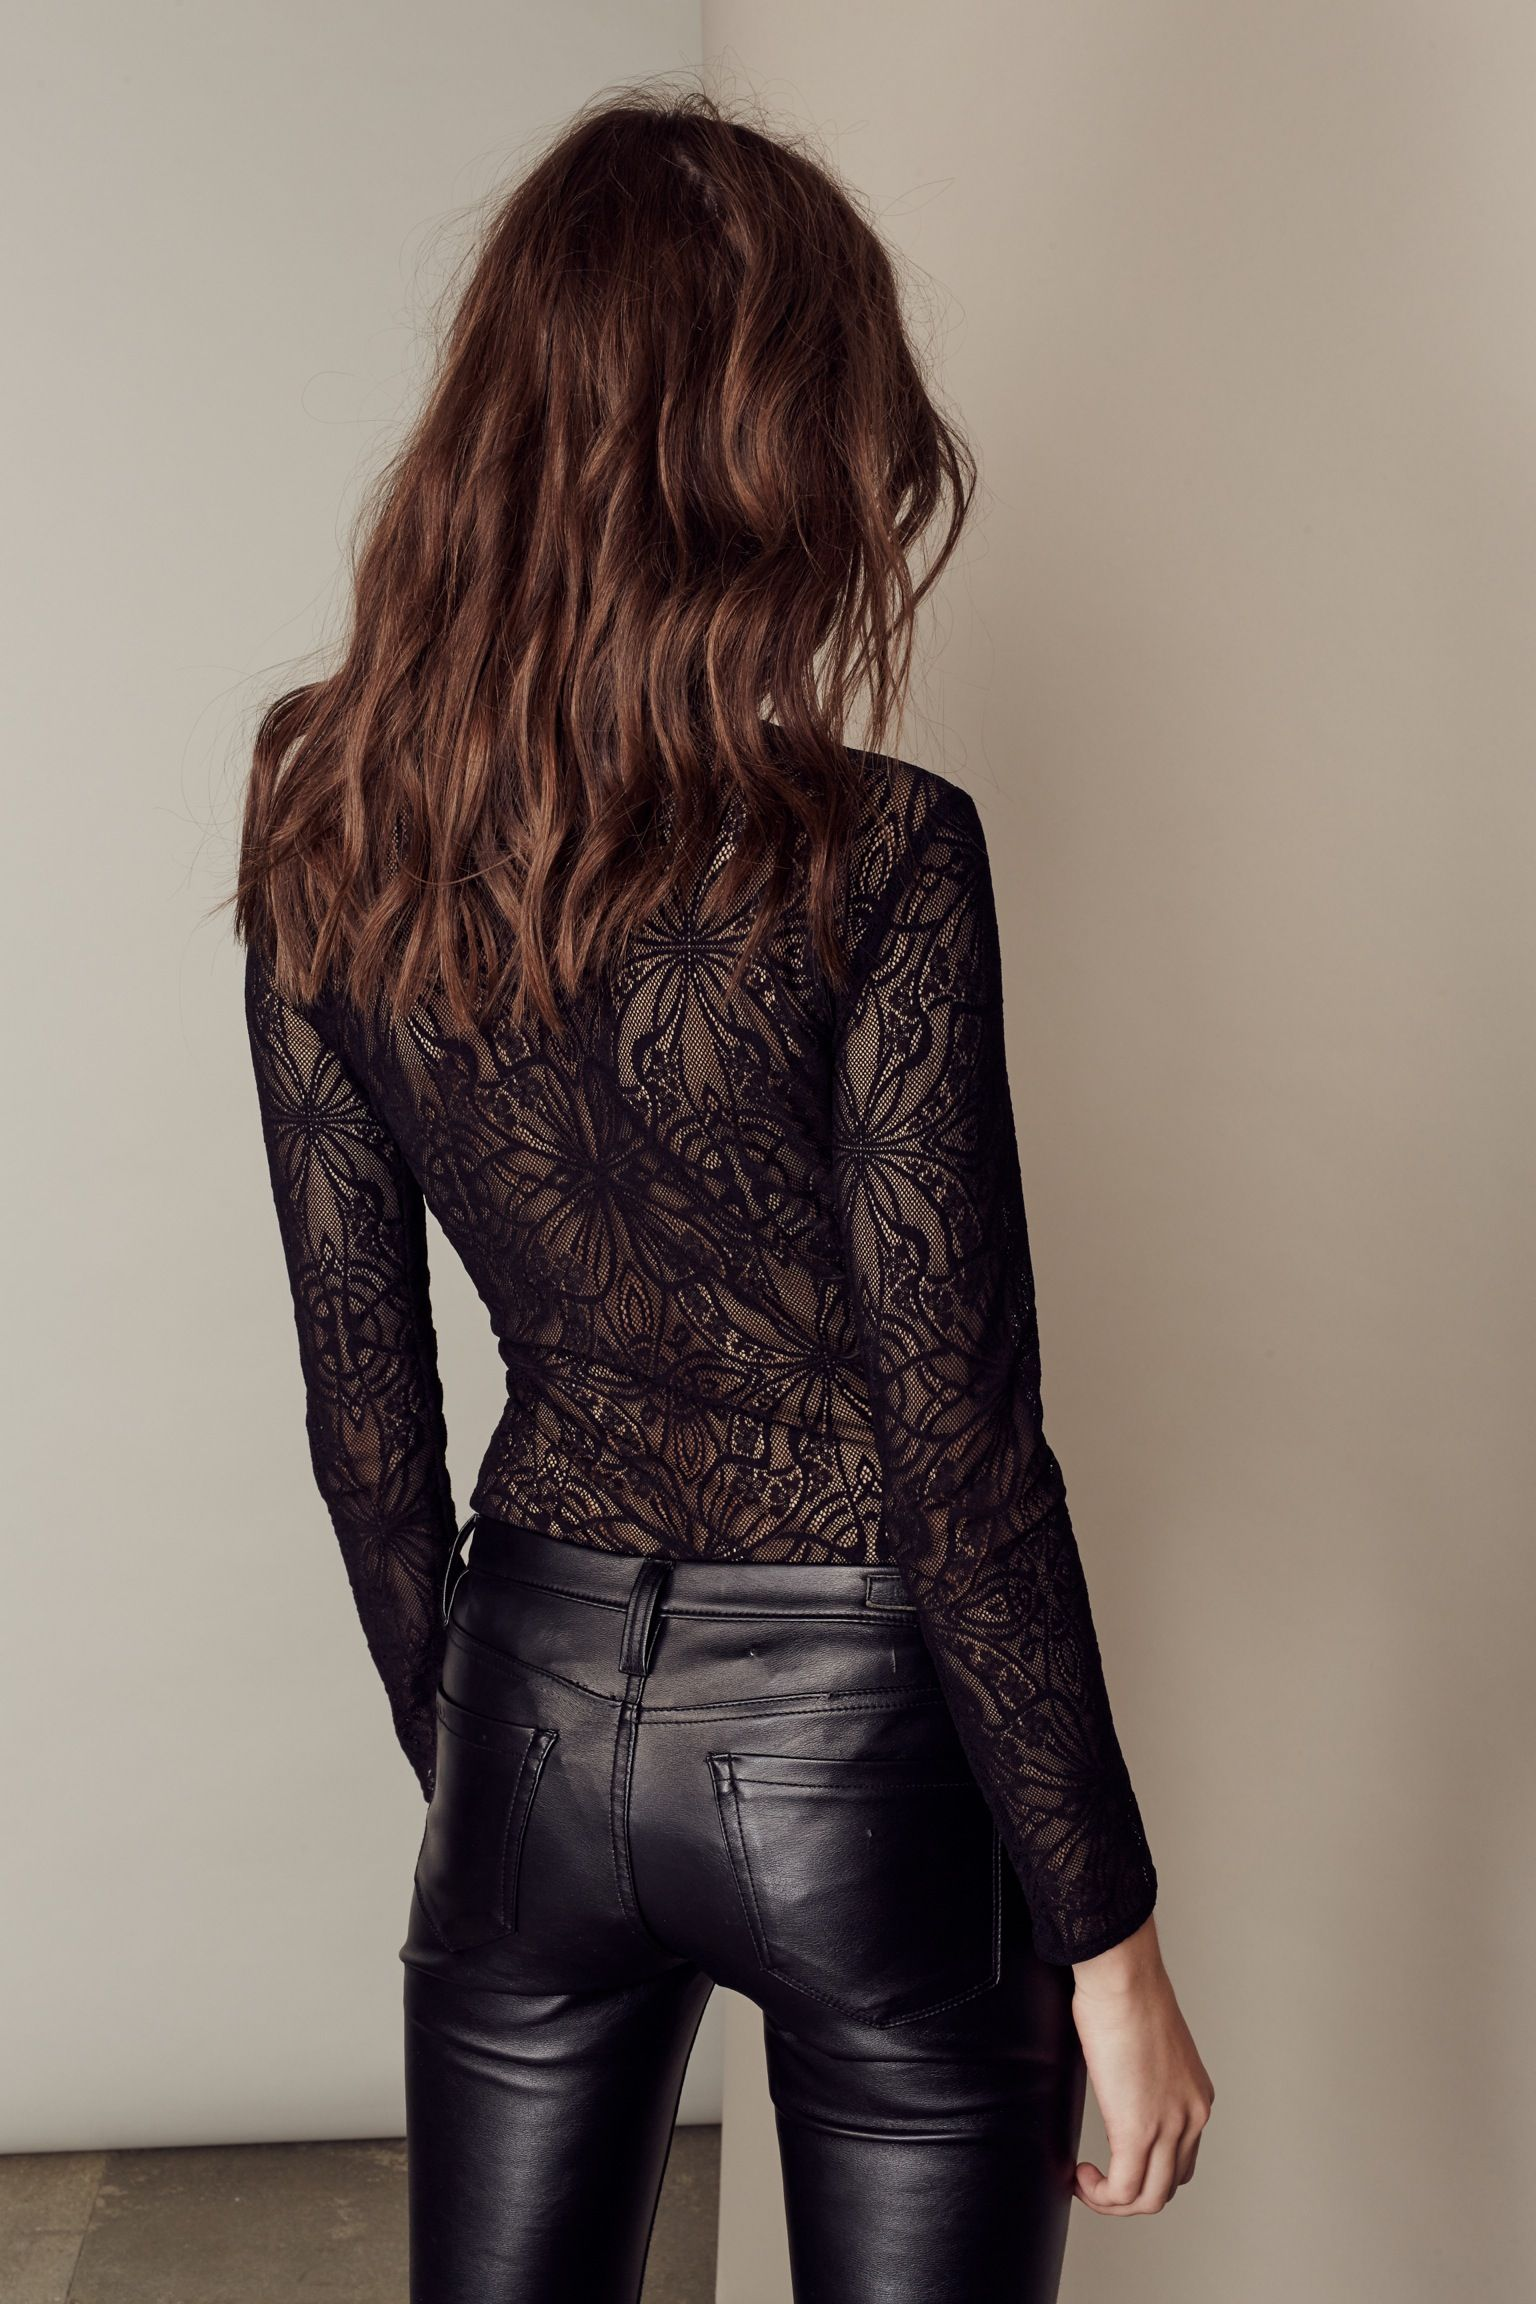 c81946e8a1 date night outfit; black leather pants; intricate bodysuit | Fashion ...